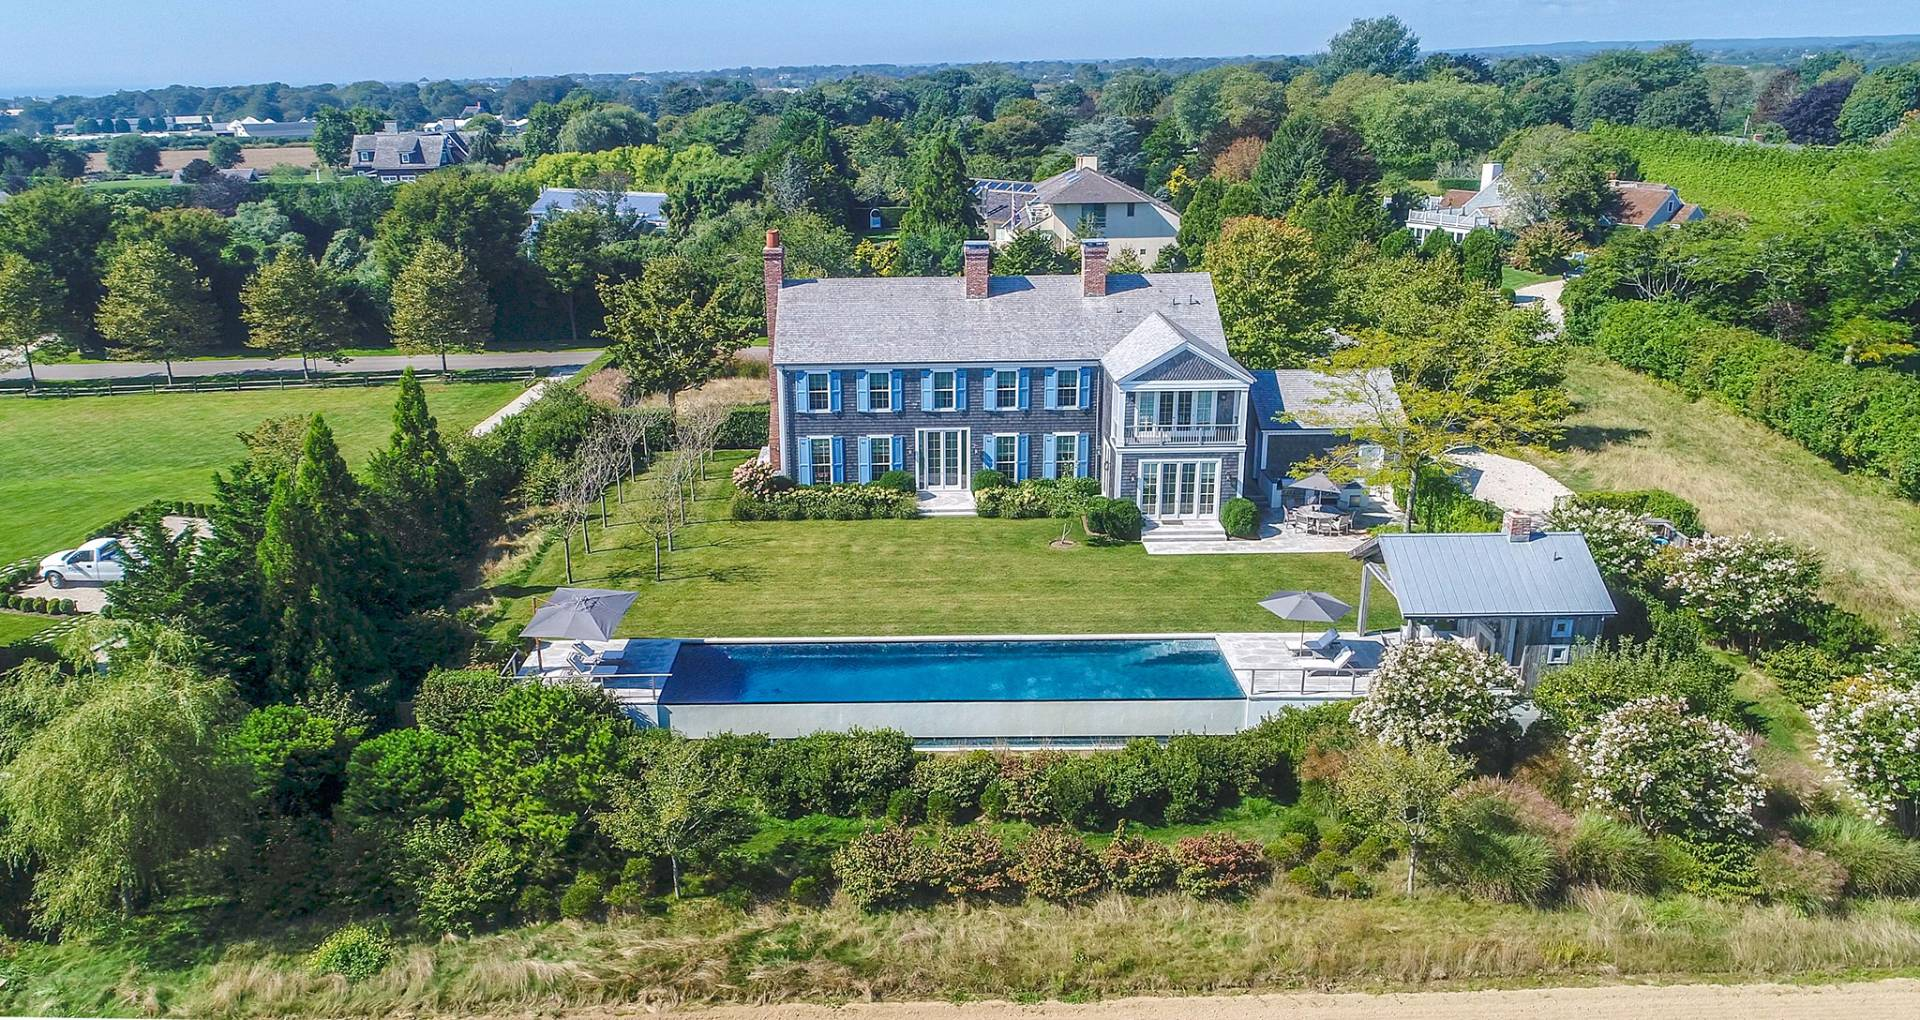 Single Family Home for Sale at Custom Traditional Overlooking Reserve 53 Fairfield Pond Lane, Sagaponack, New York